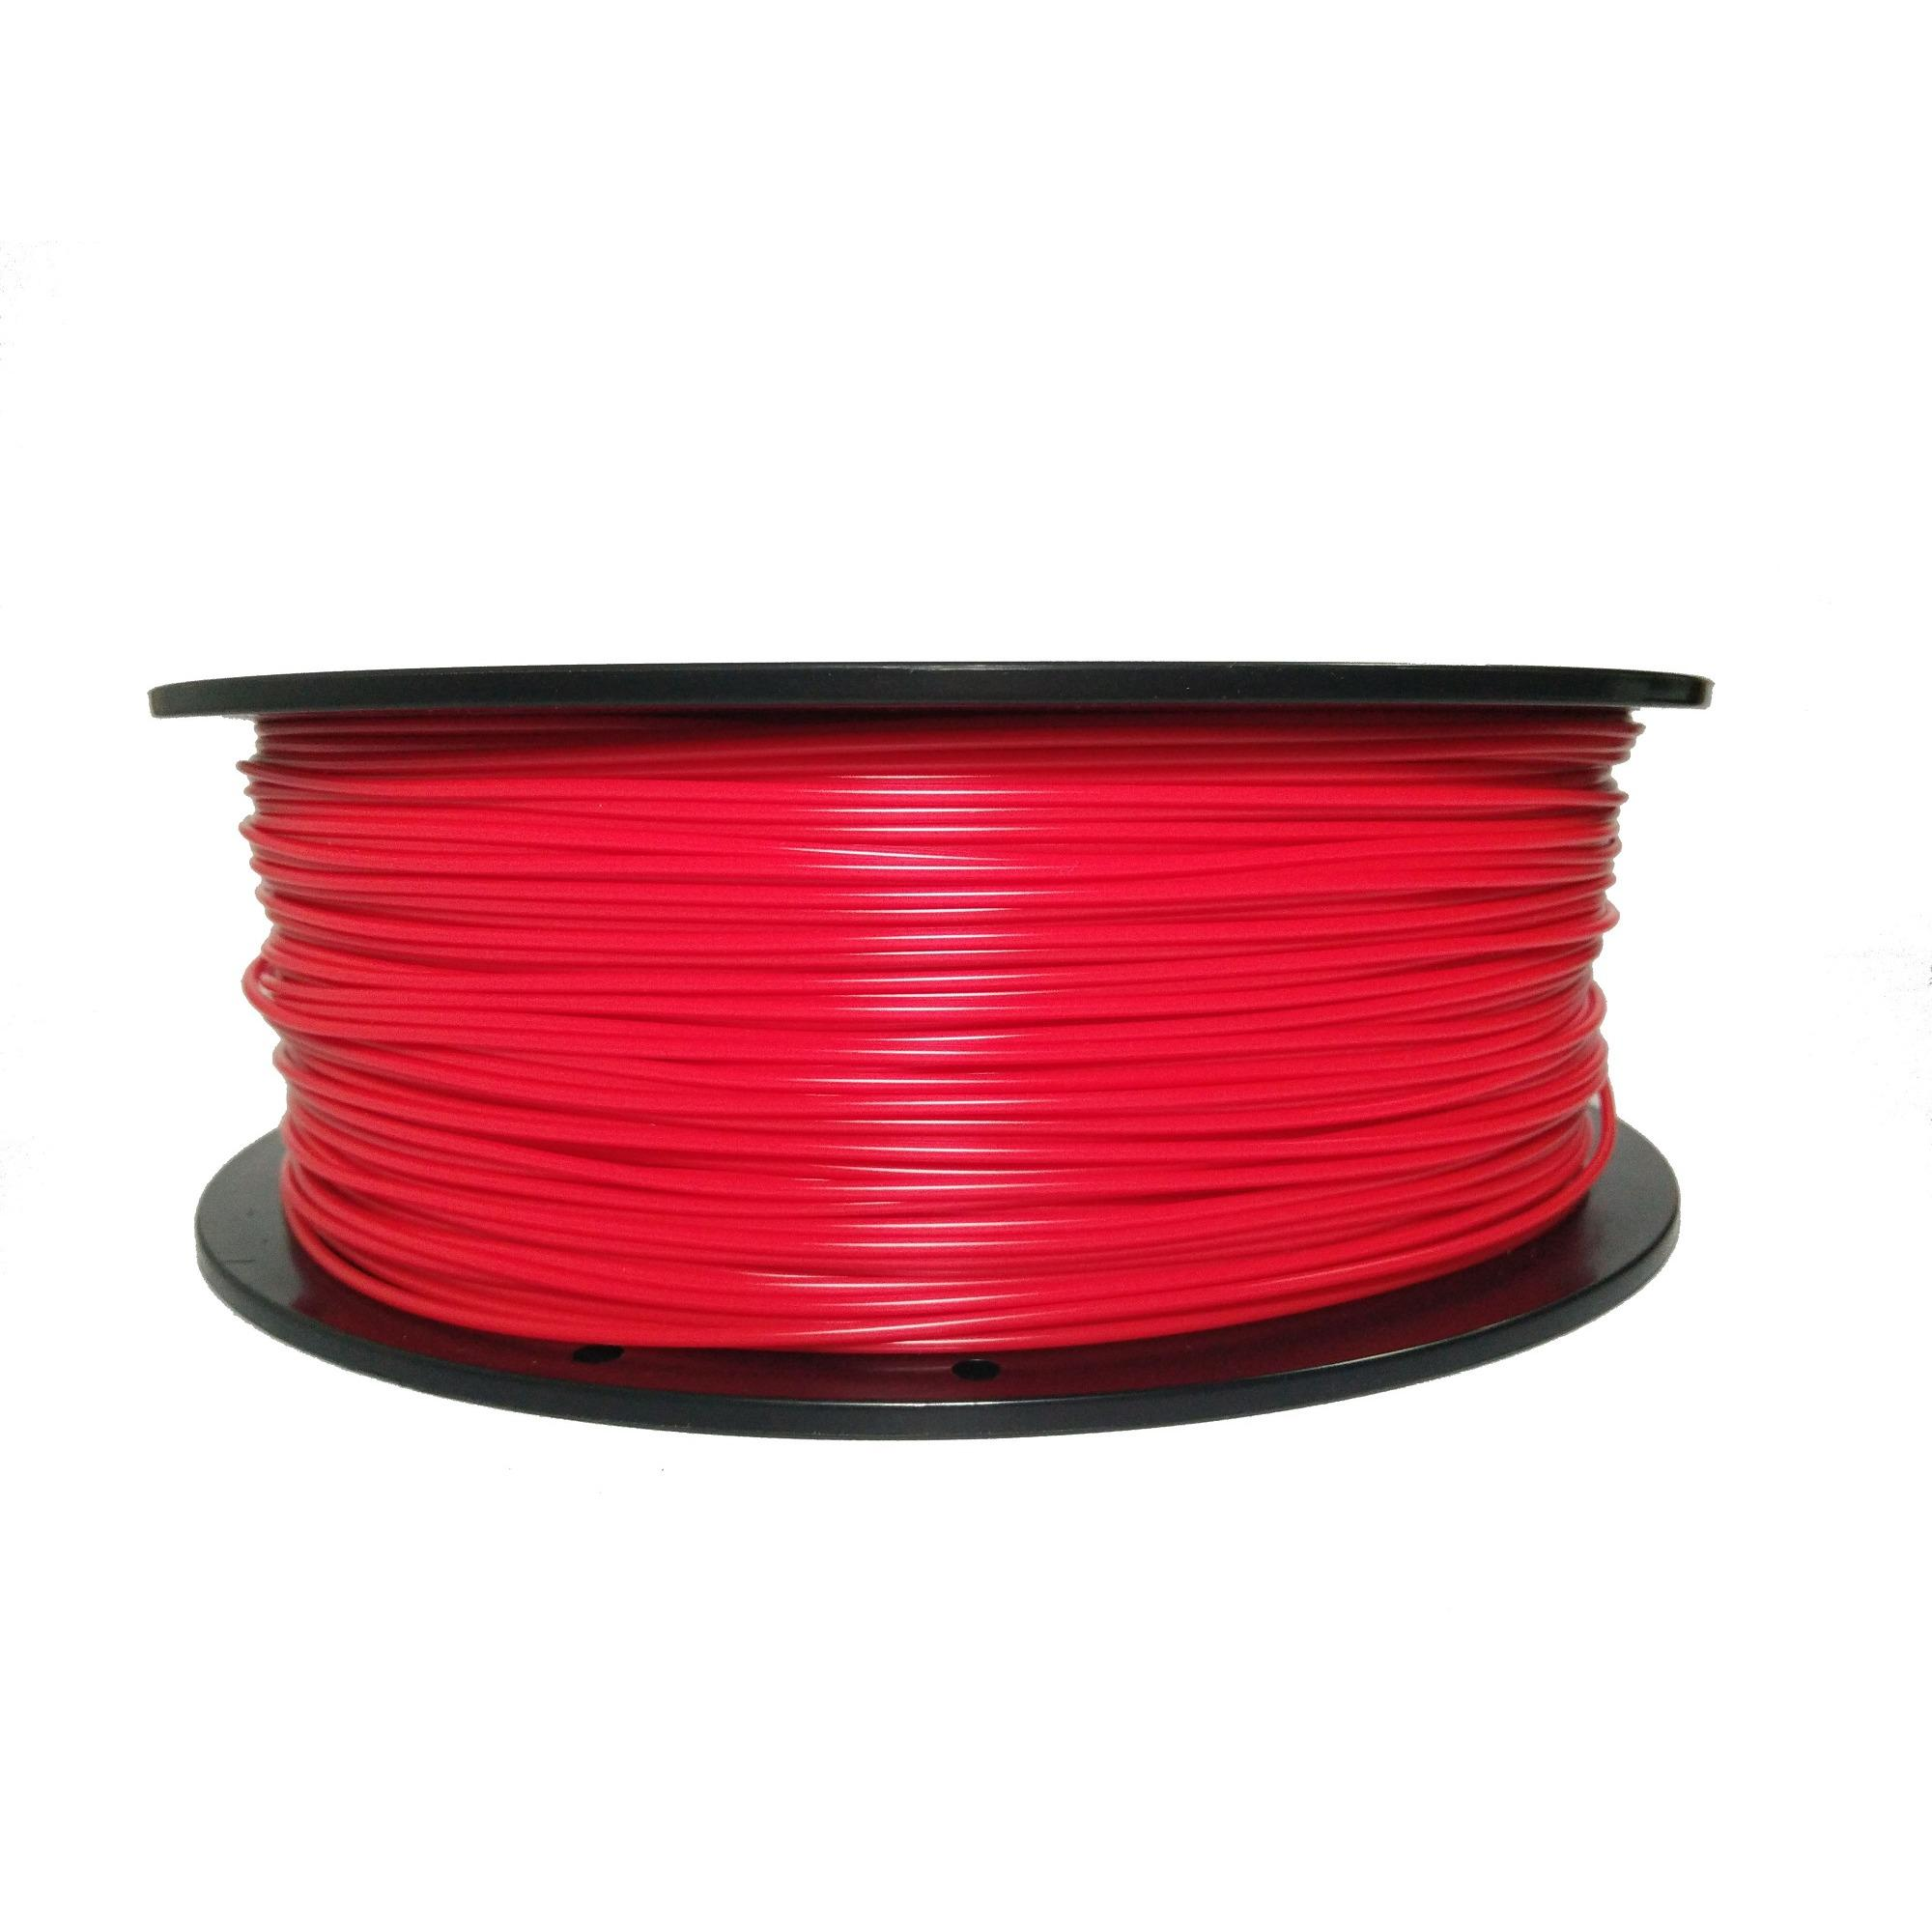 Cheapest Red Petg Filament For 3D Printer 1 75Mm 1Kg Online